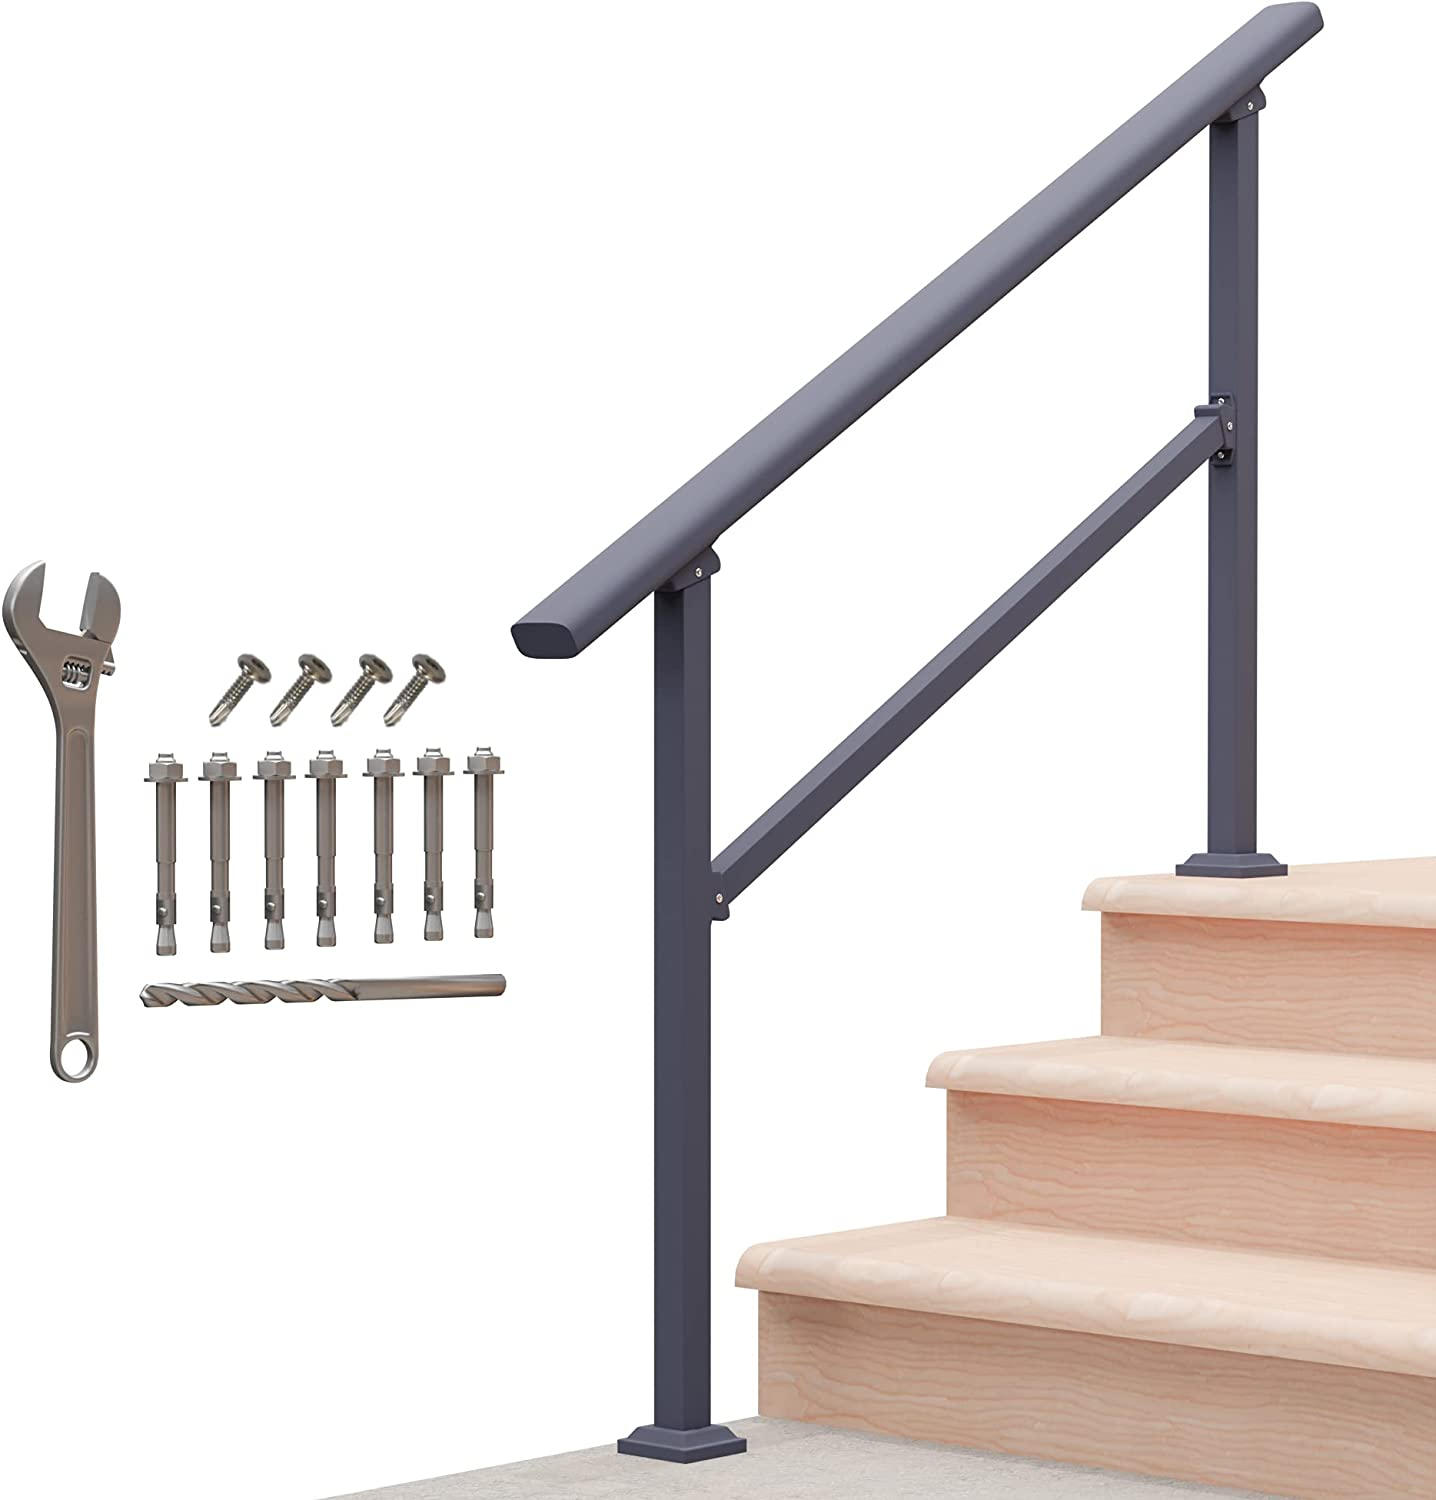 Outdoor Hand Rails for Steps, Black Wrought Iron Handrail (3 Step)